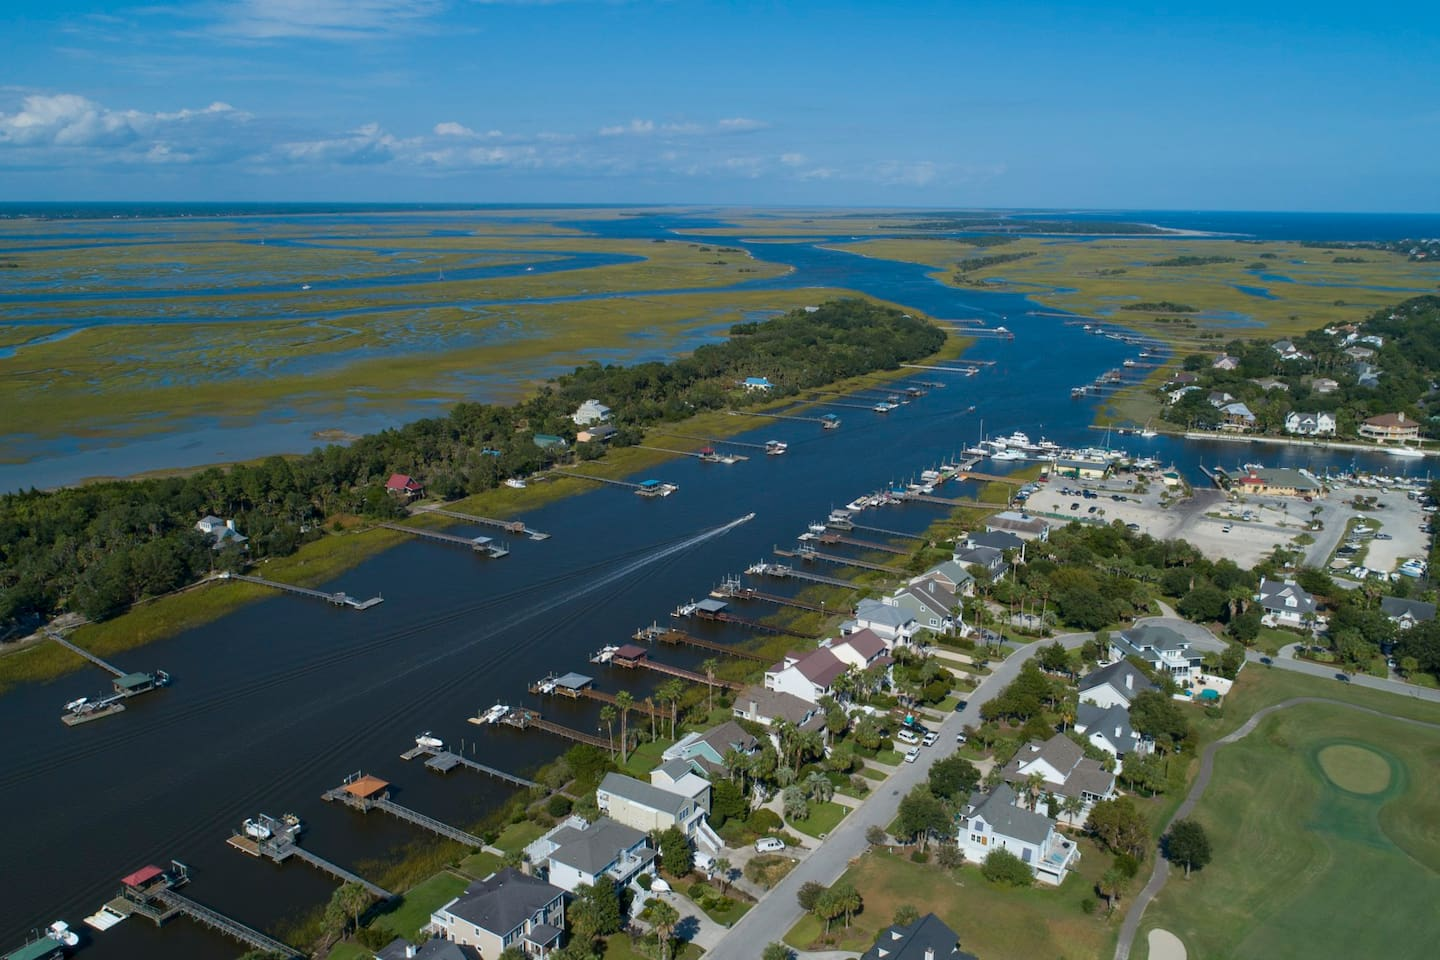 Charming Cottage on the waterway with Big view, dock and five minutes from the marina. Great fishing, crabbing, harvest oysters, boating, collecting shells, exploring the two and a half mile dirt road on the island are just a few things to do. RELAX.